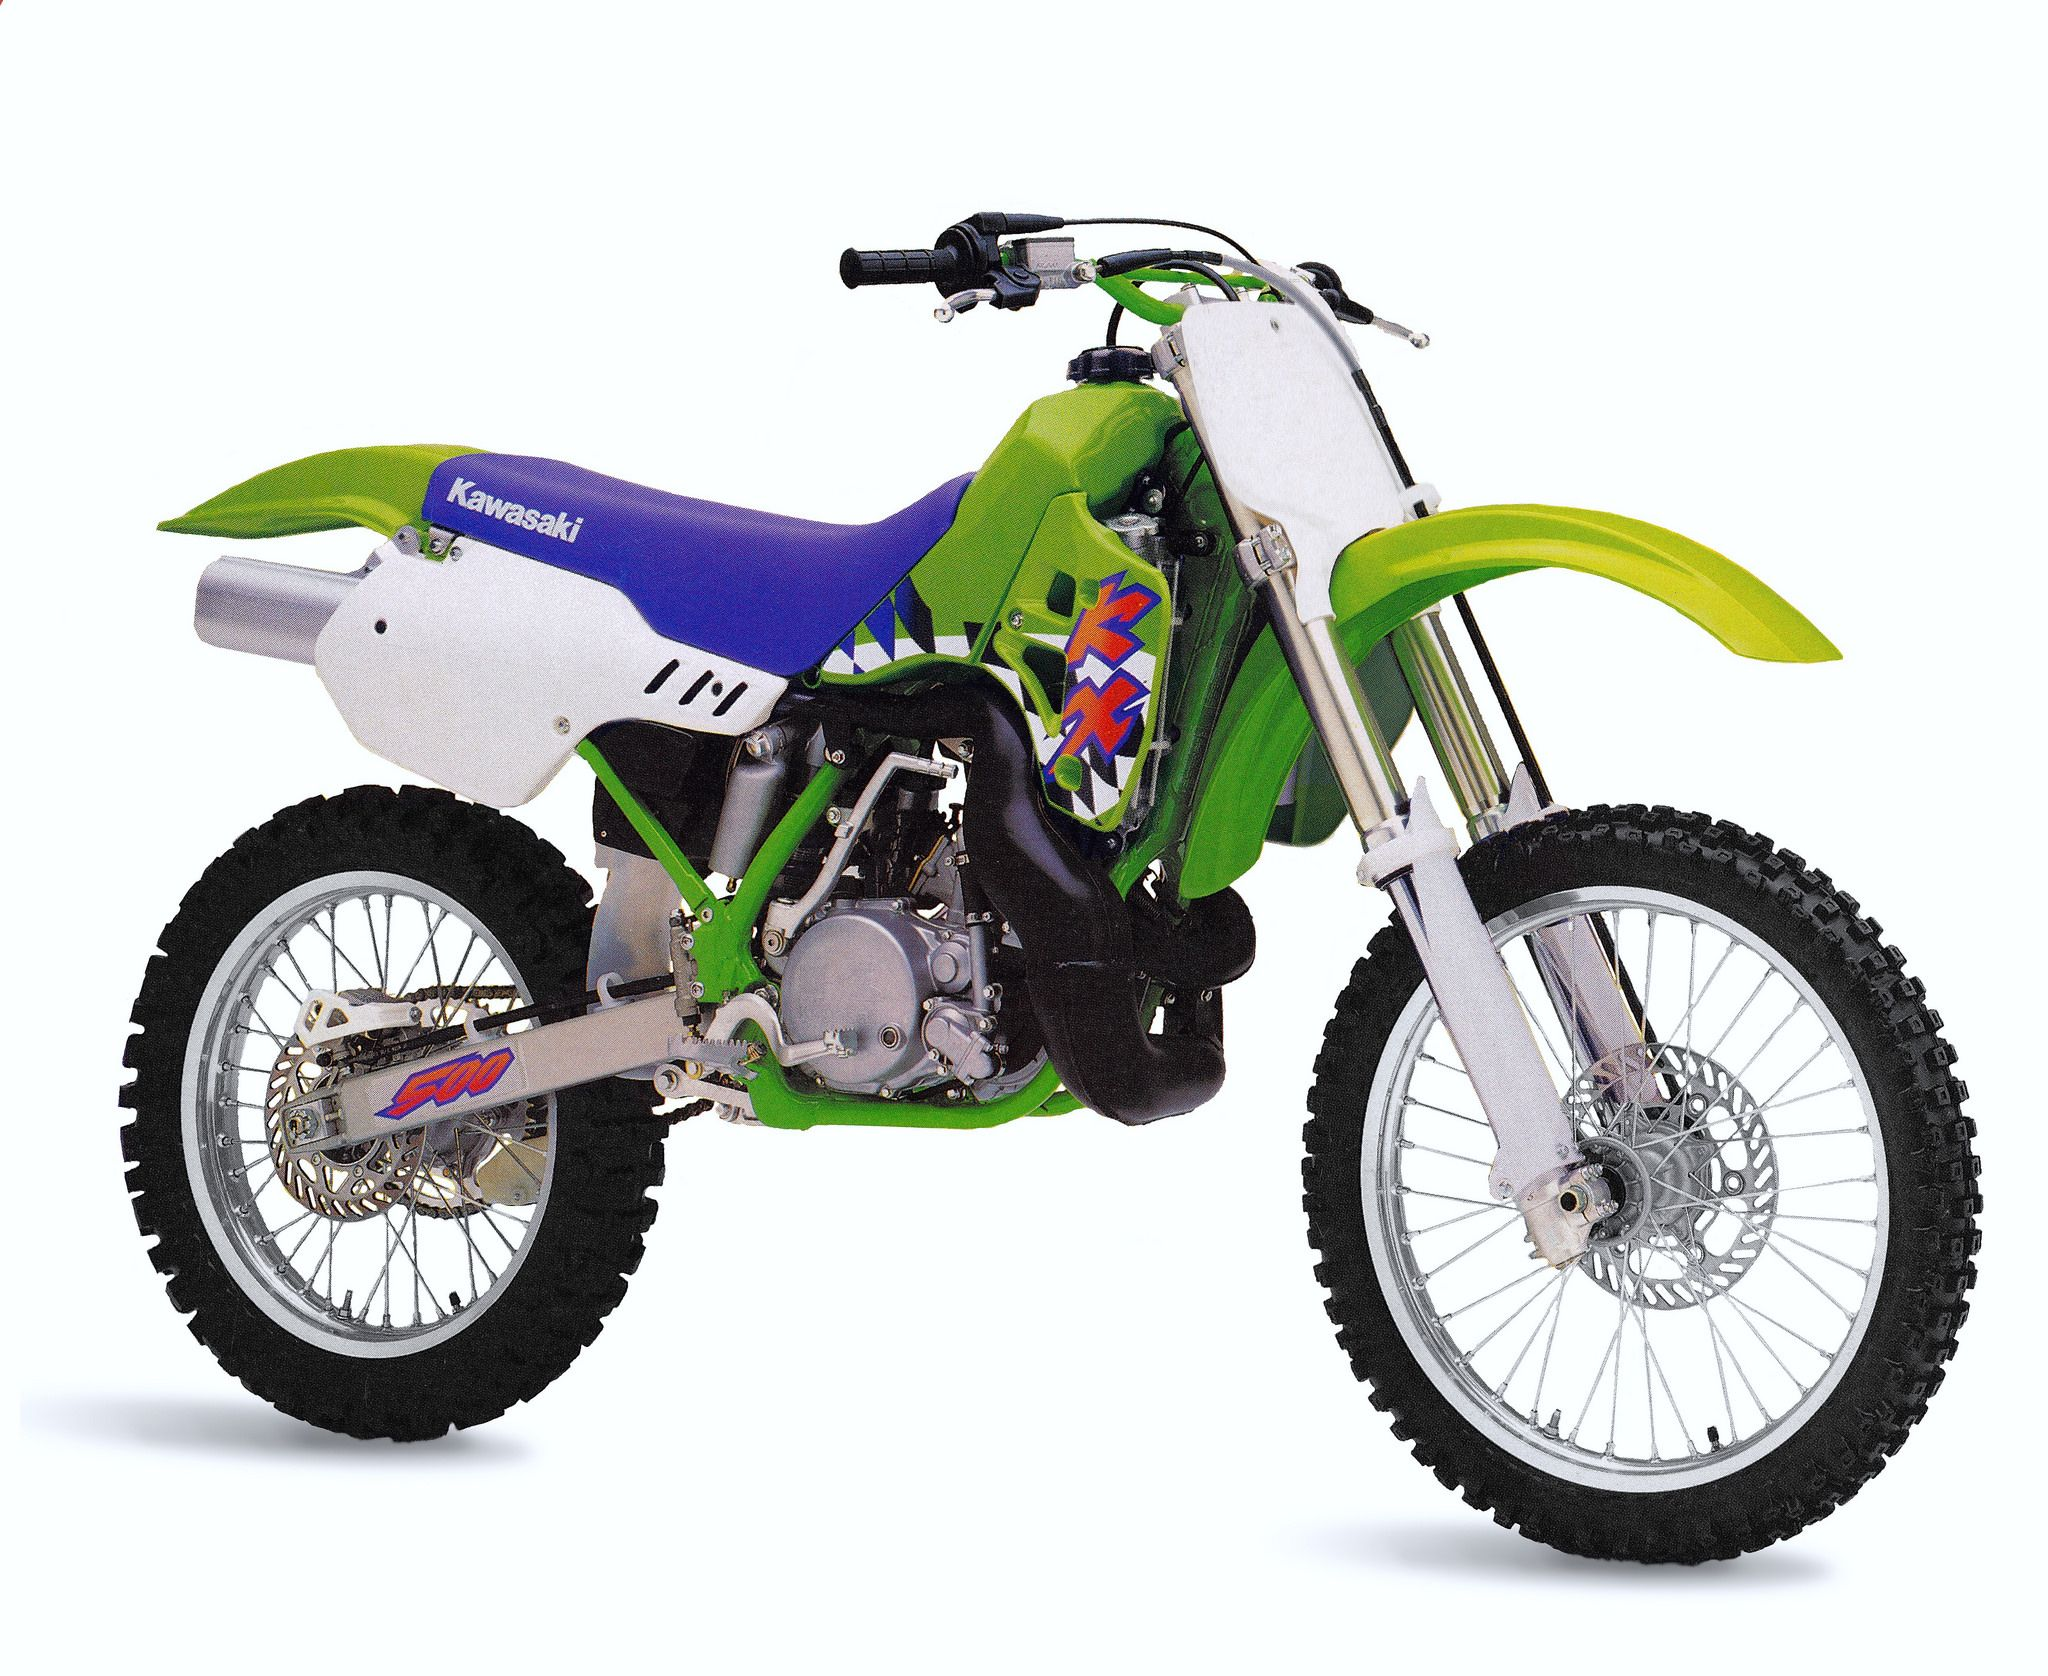 Kx125 kawasaki motorcyle kx pinterest motocross dirt biking and motocross bikes